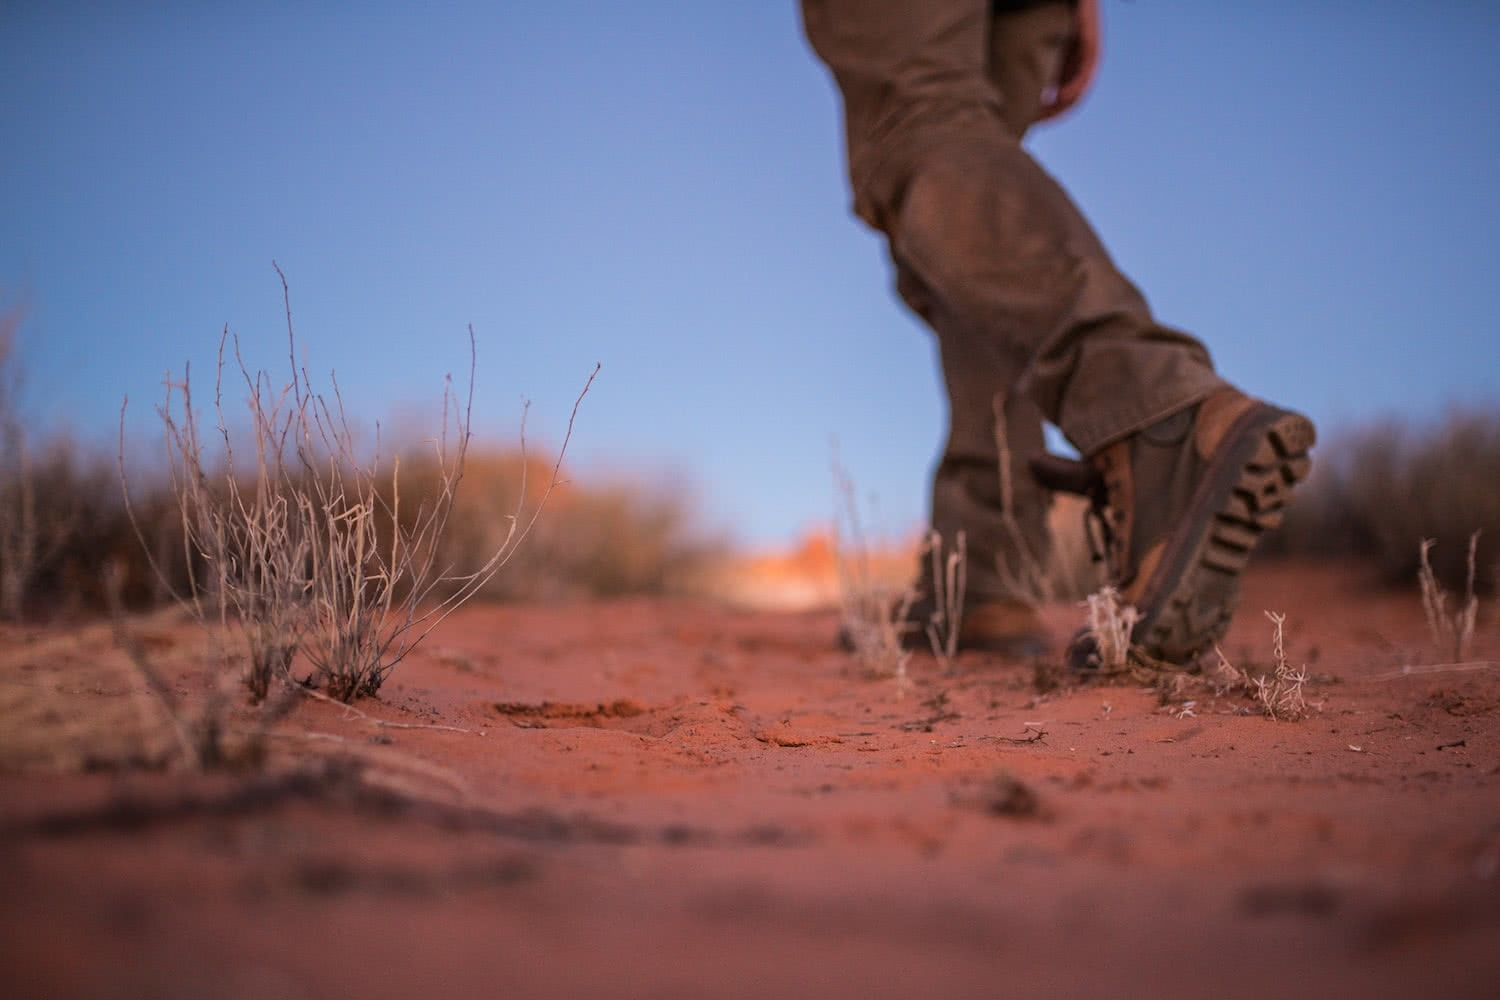 outback way rob mulally man walking in desert